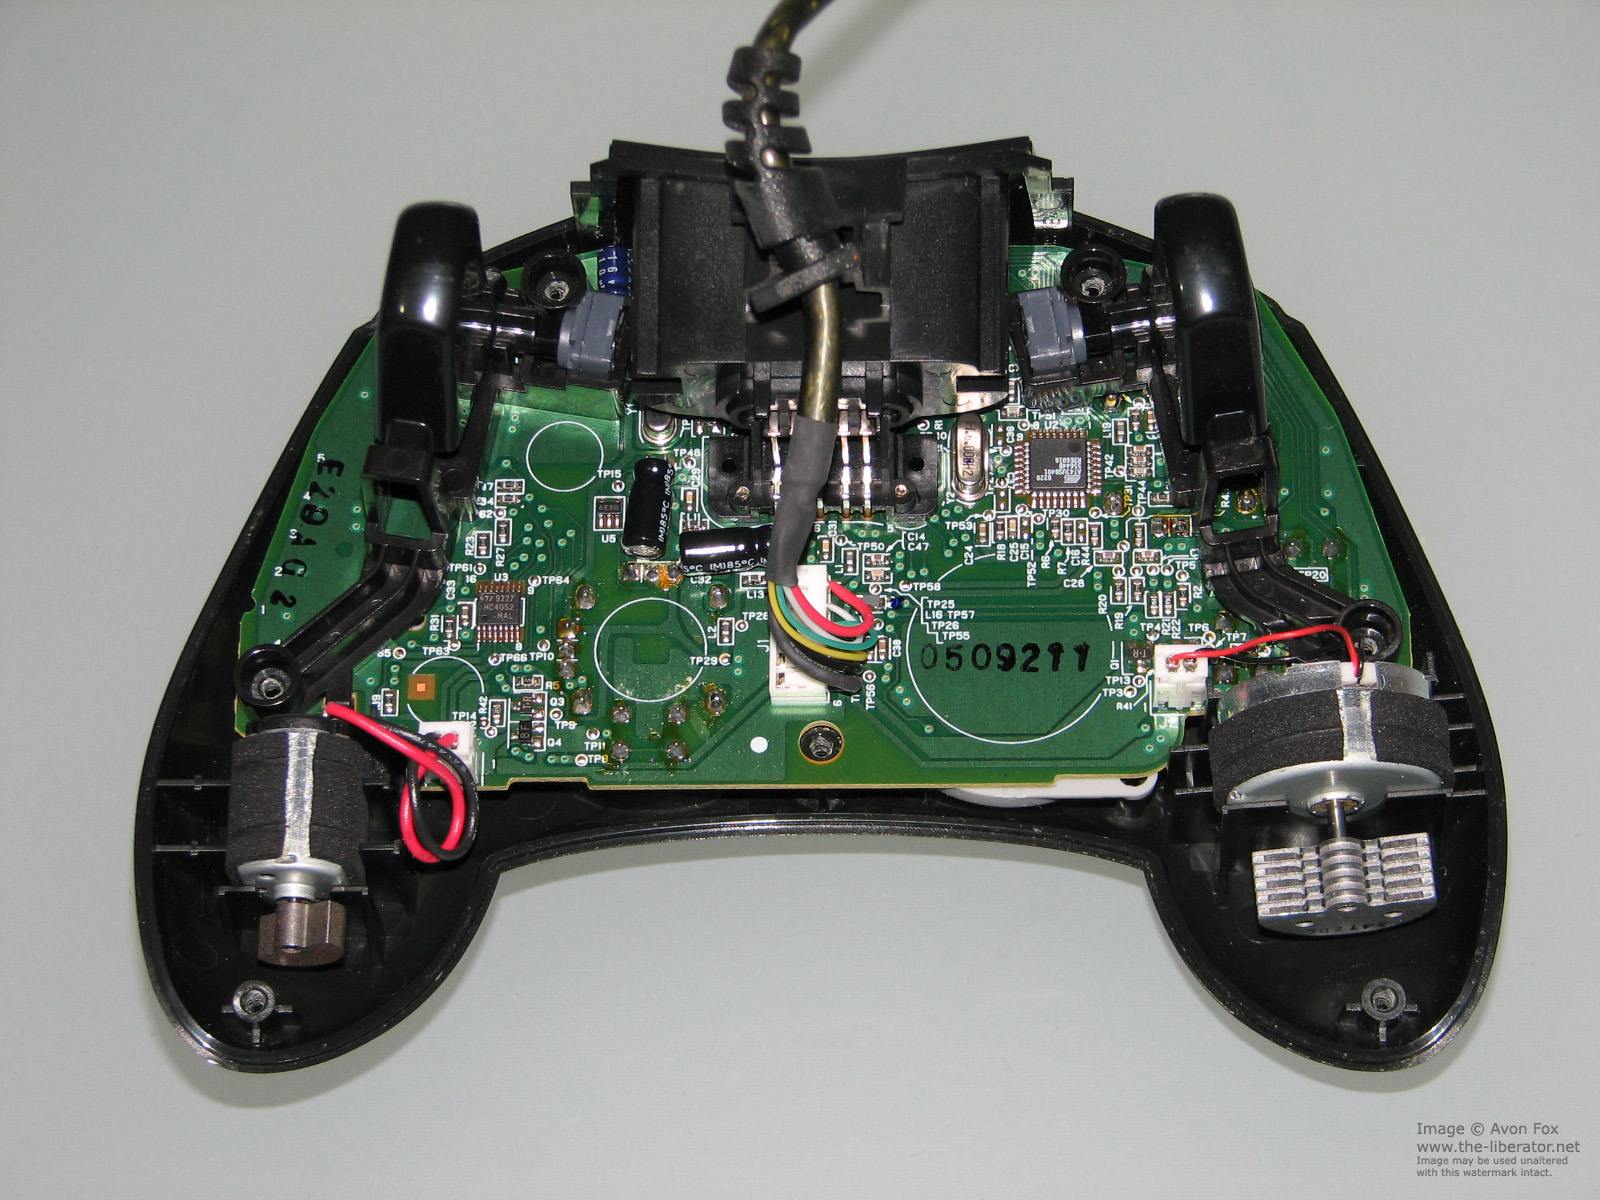 hight resolution of xbox controller wiring diagram wiring library rh 40 skriptoase de xbox one wireless controller diagram xbox one wireless controller diagram